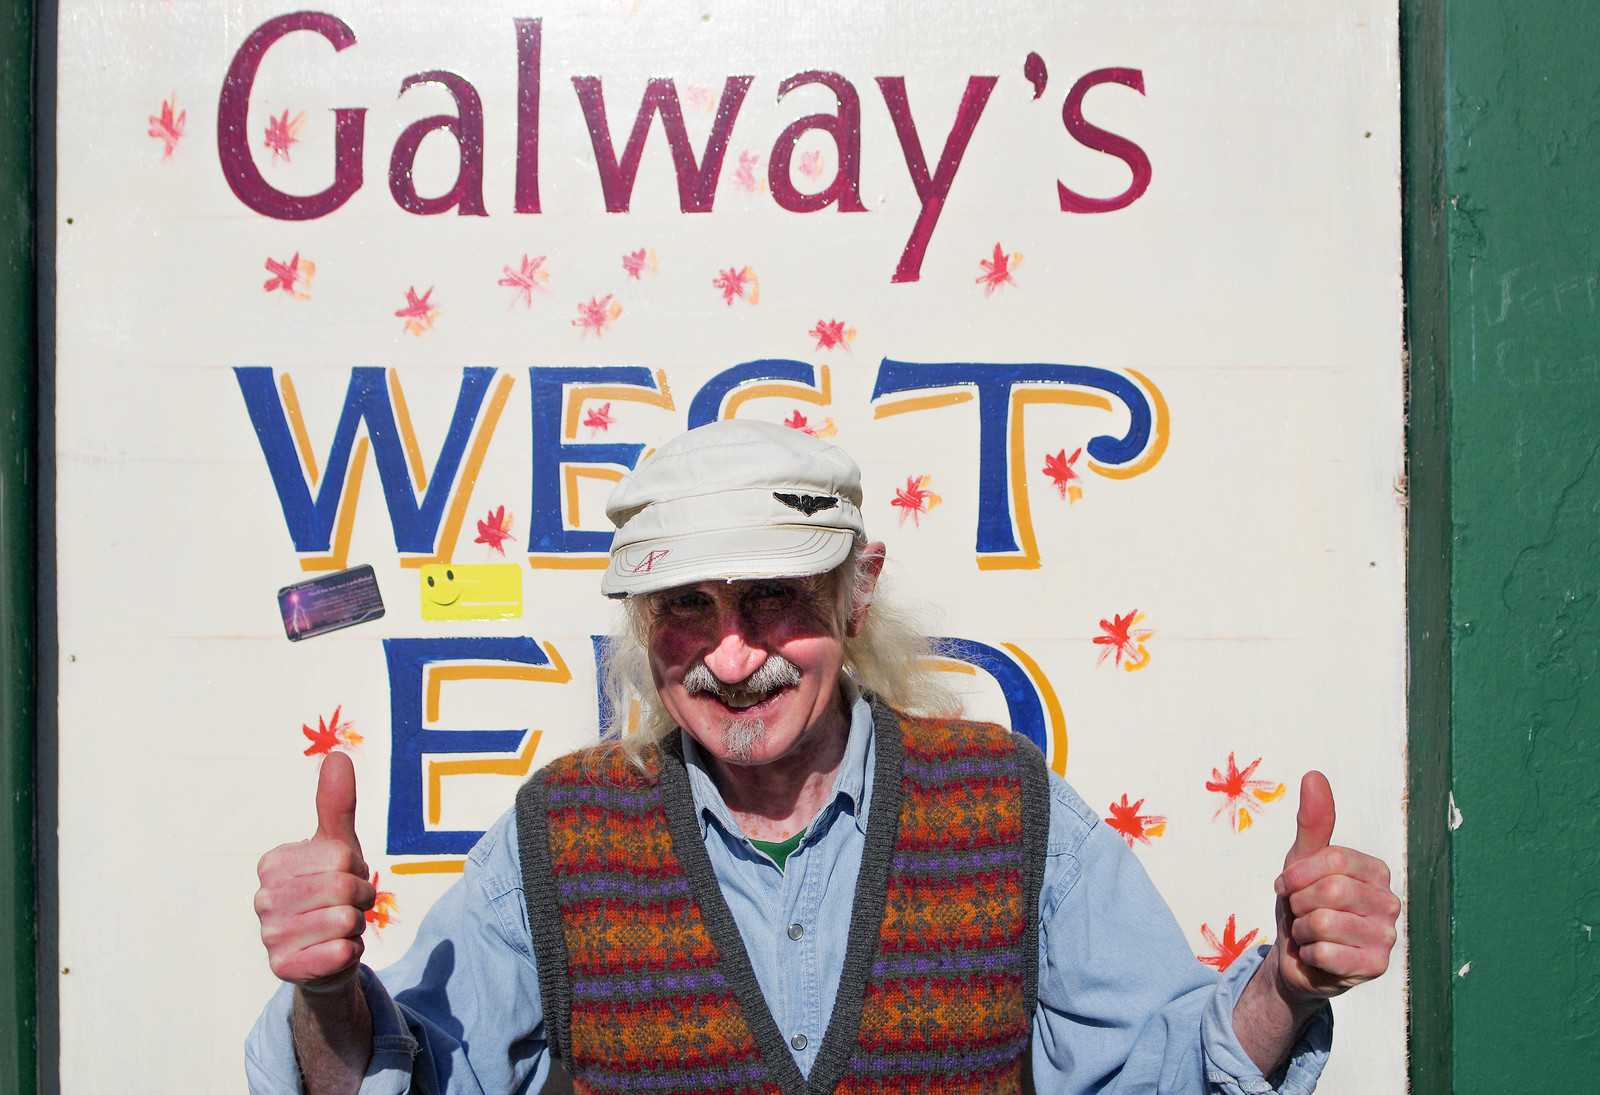 Galway - The friendly city